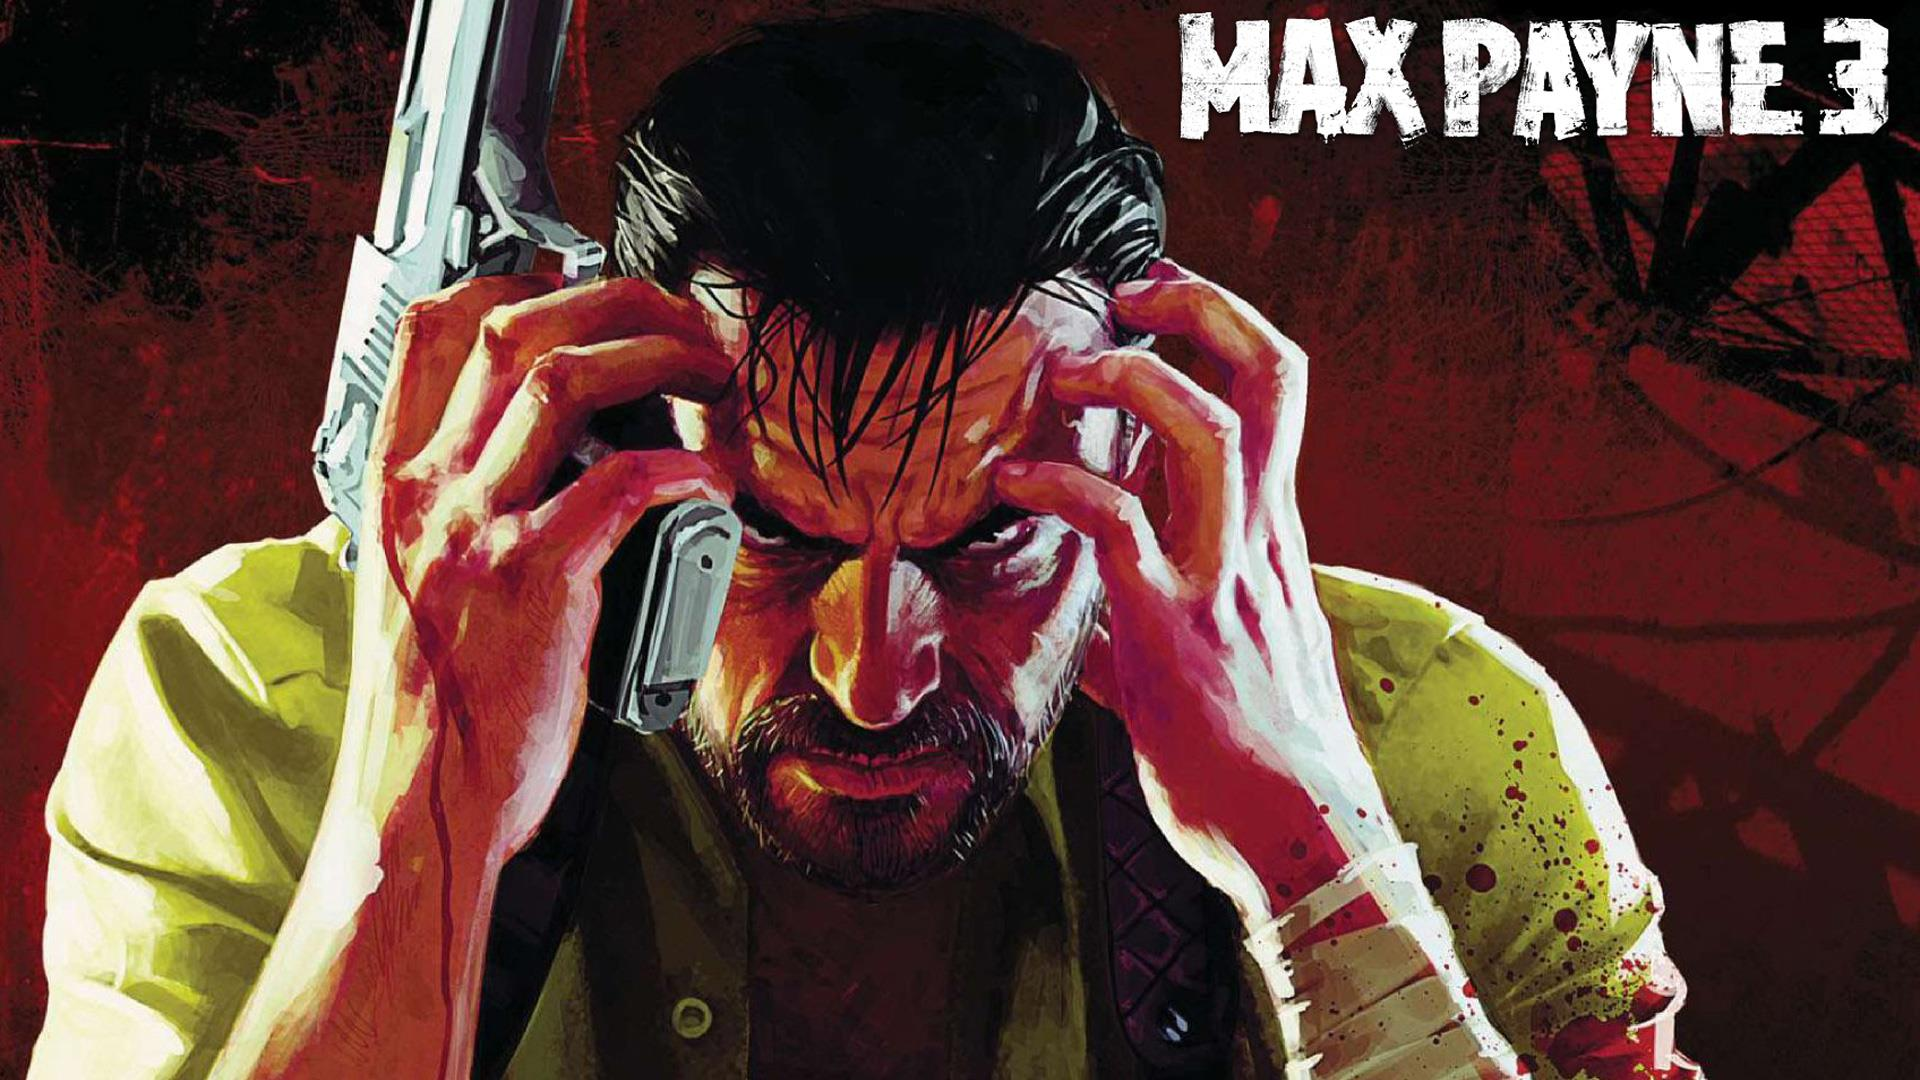 Max Payne 2 The Fall Of Max Payne Wallpaper Max Payne 3 Wallpapers Pictures Images